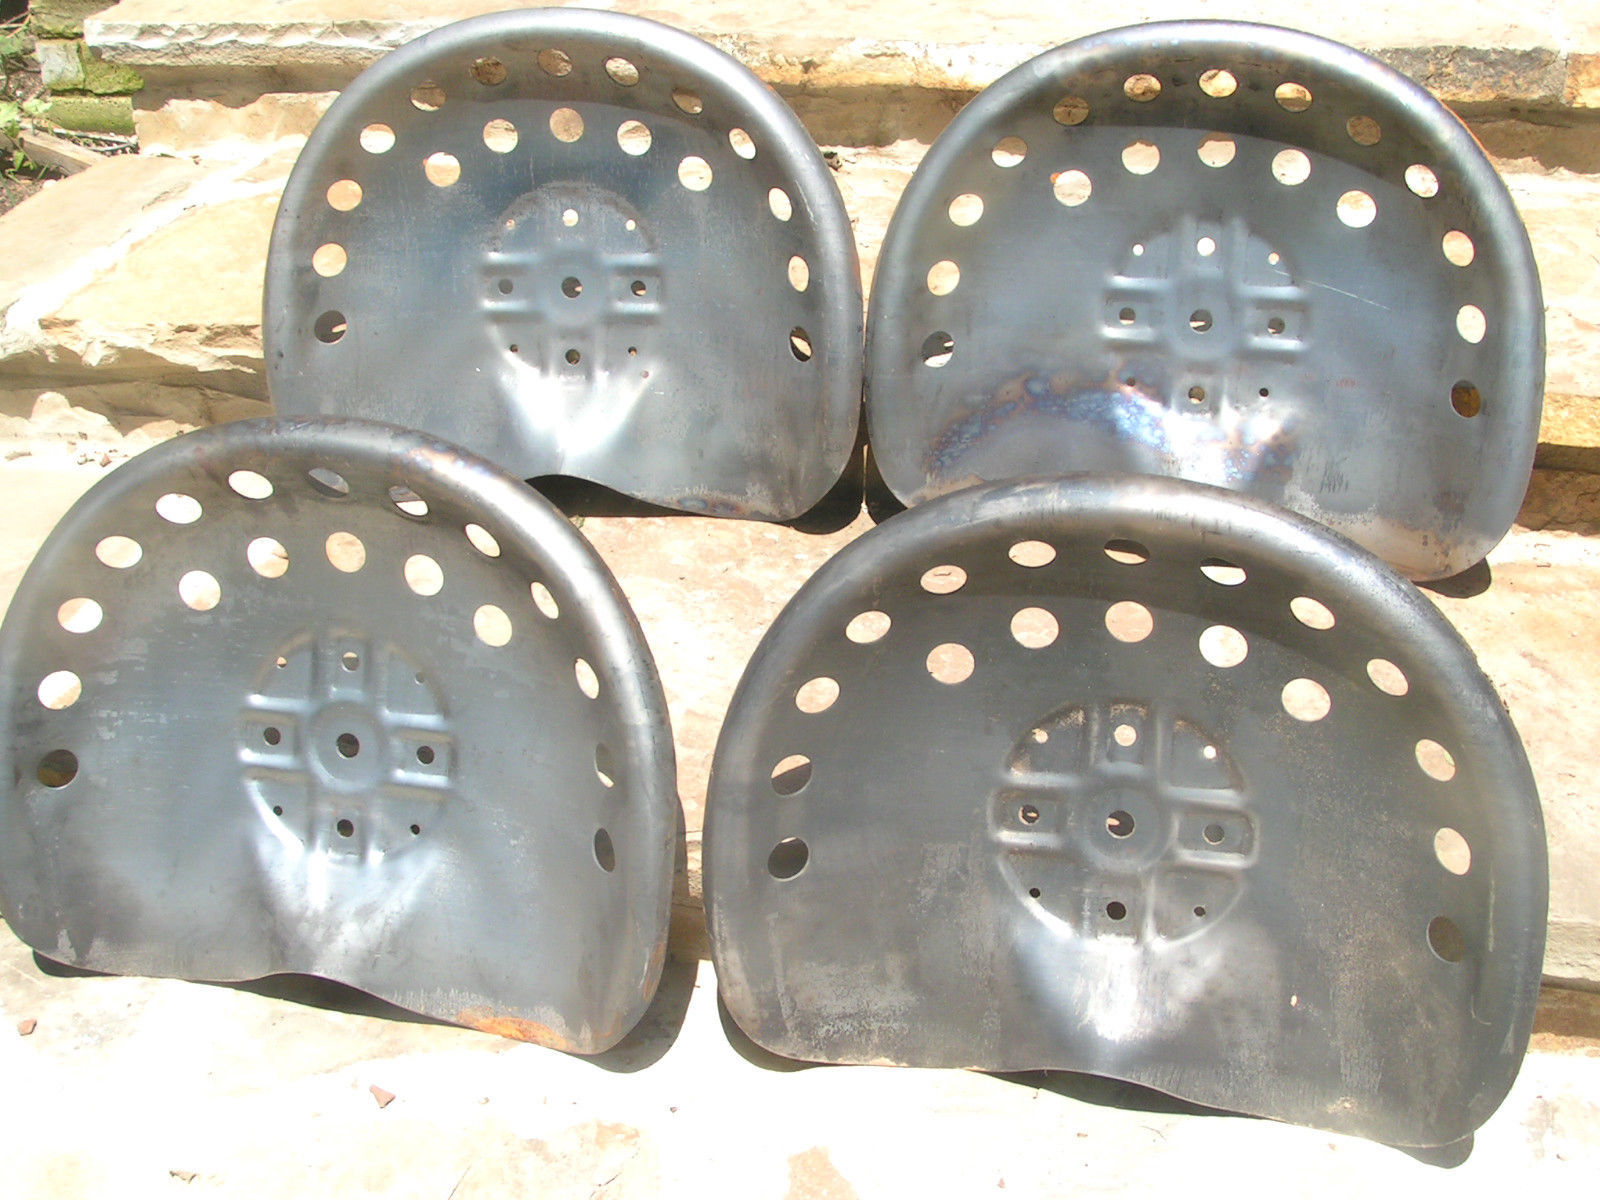 Reproduction Tractor Seat Stool : Four steel tractor metal farm machinery stool seats or